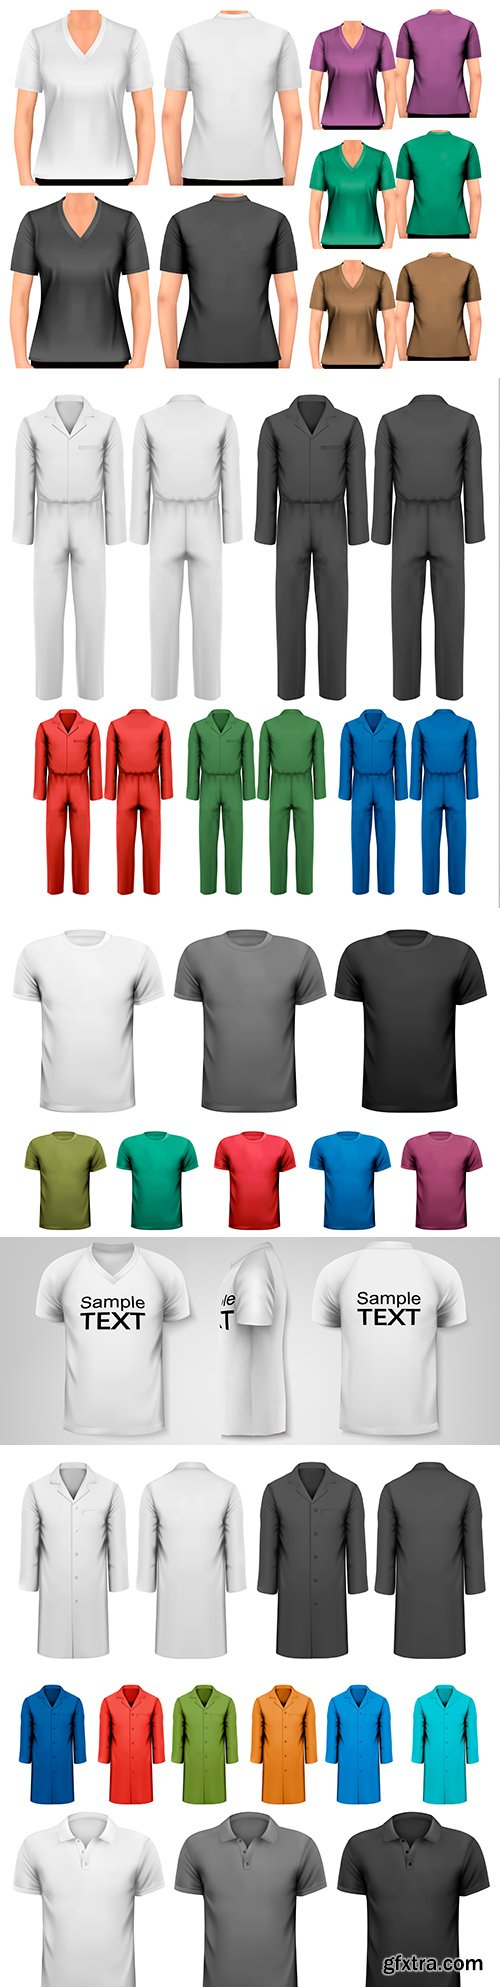 Black and white and colored men's T-shirts and workwear